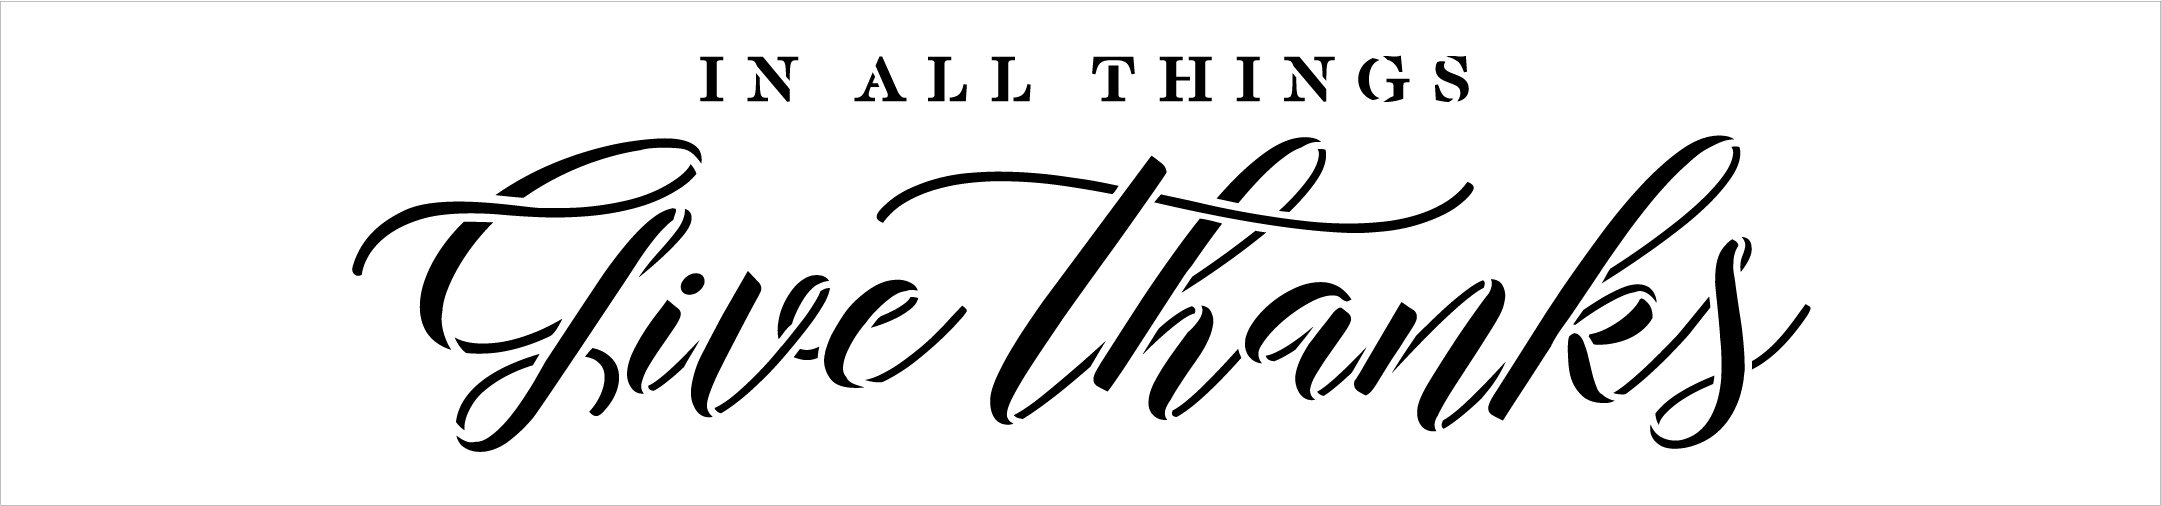 In All Things Give Thanks Script Stencil by StudioR12 | DIY Simple Fall Farmhouse Home Decor | Craft Autumn Wood Sign | Select Size